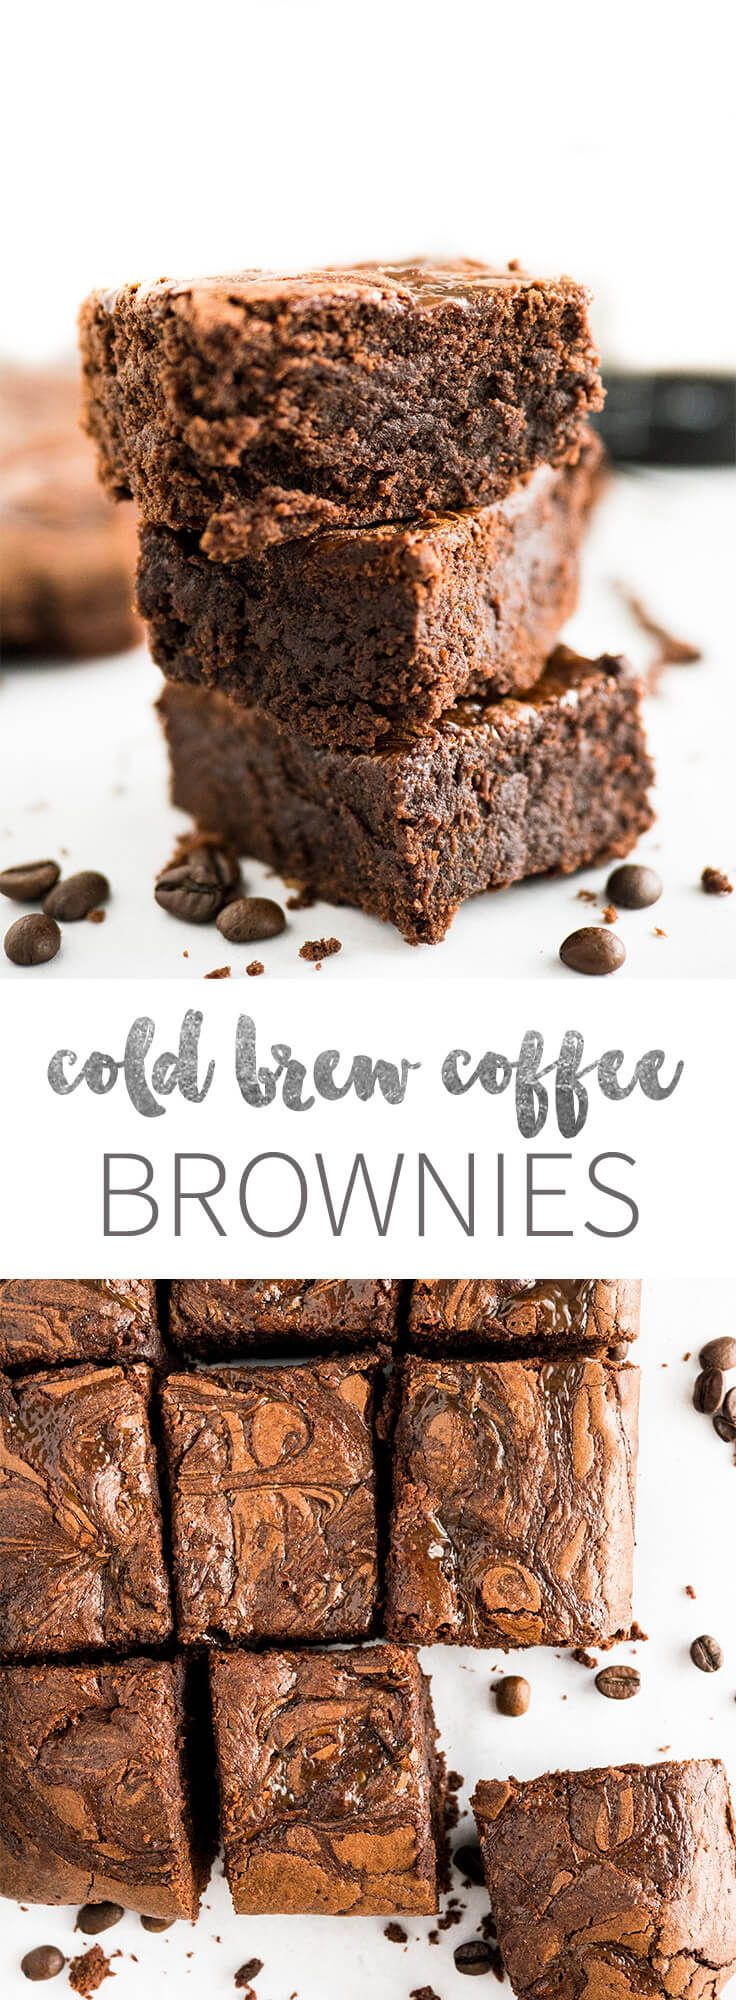 Cold Brew Coffee Brownies are rich, super fudgy, and made with cold brew coffee which takes the chocolate flavor to a new level! These delicious brownies satisfy all your caffeine and chocolate cravings.